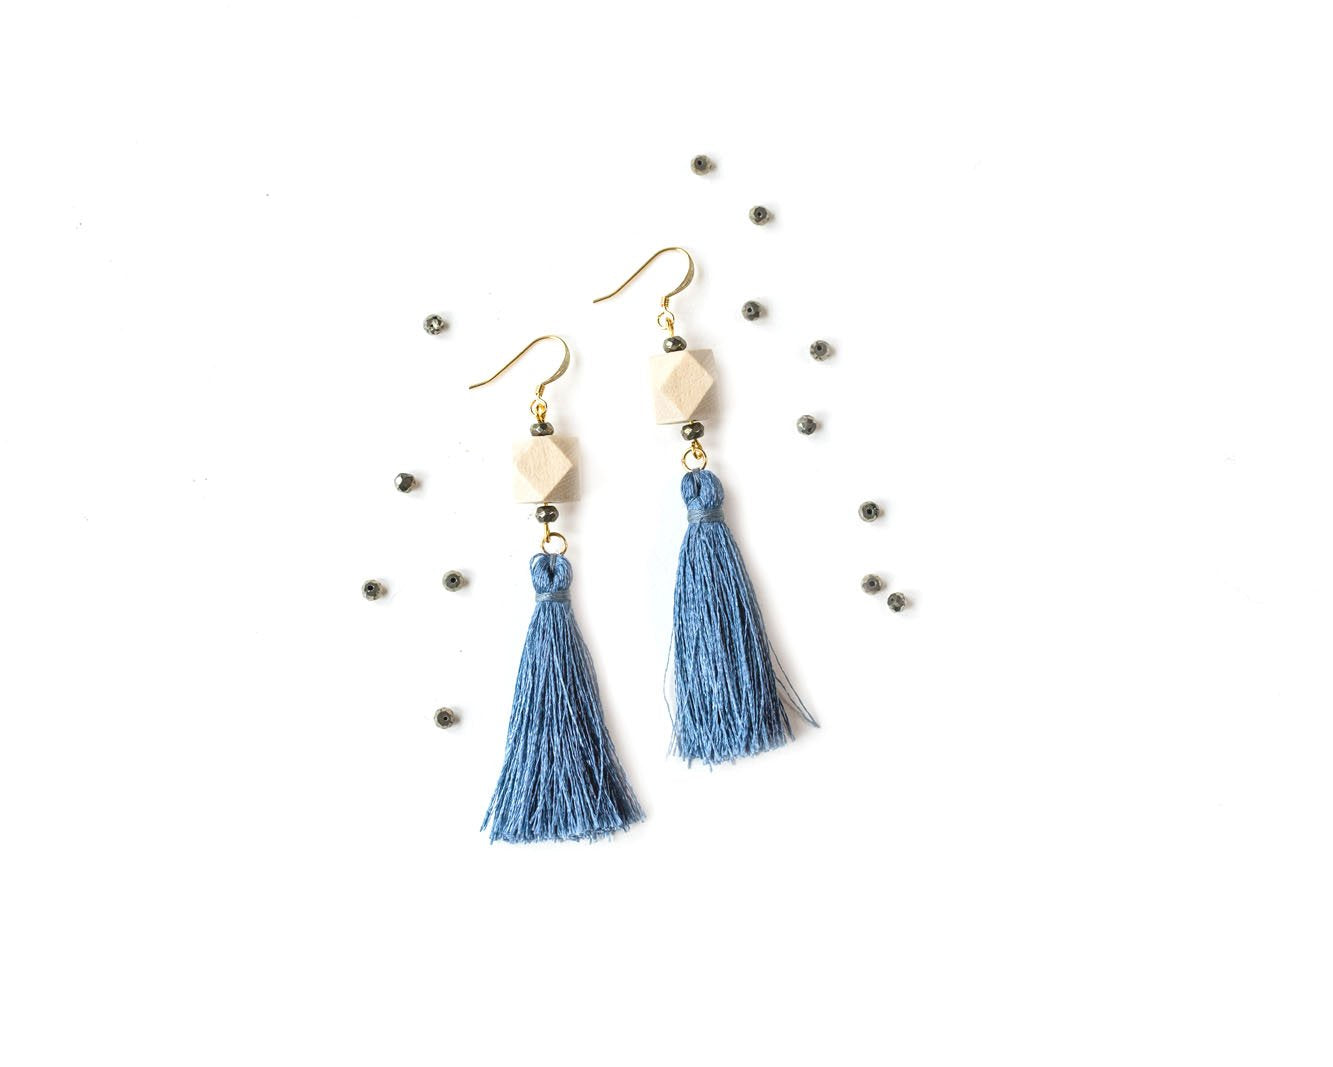 Pyrite Tassel Earrings with Nickel-Free Surgical Steel Gold